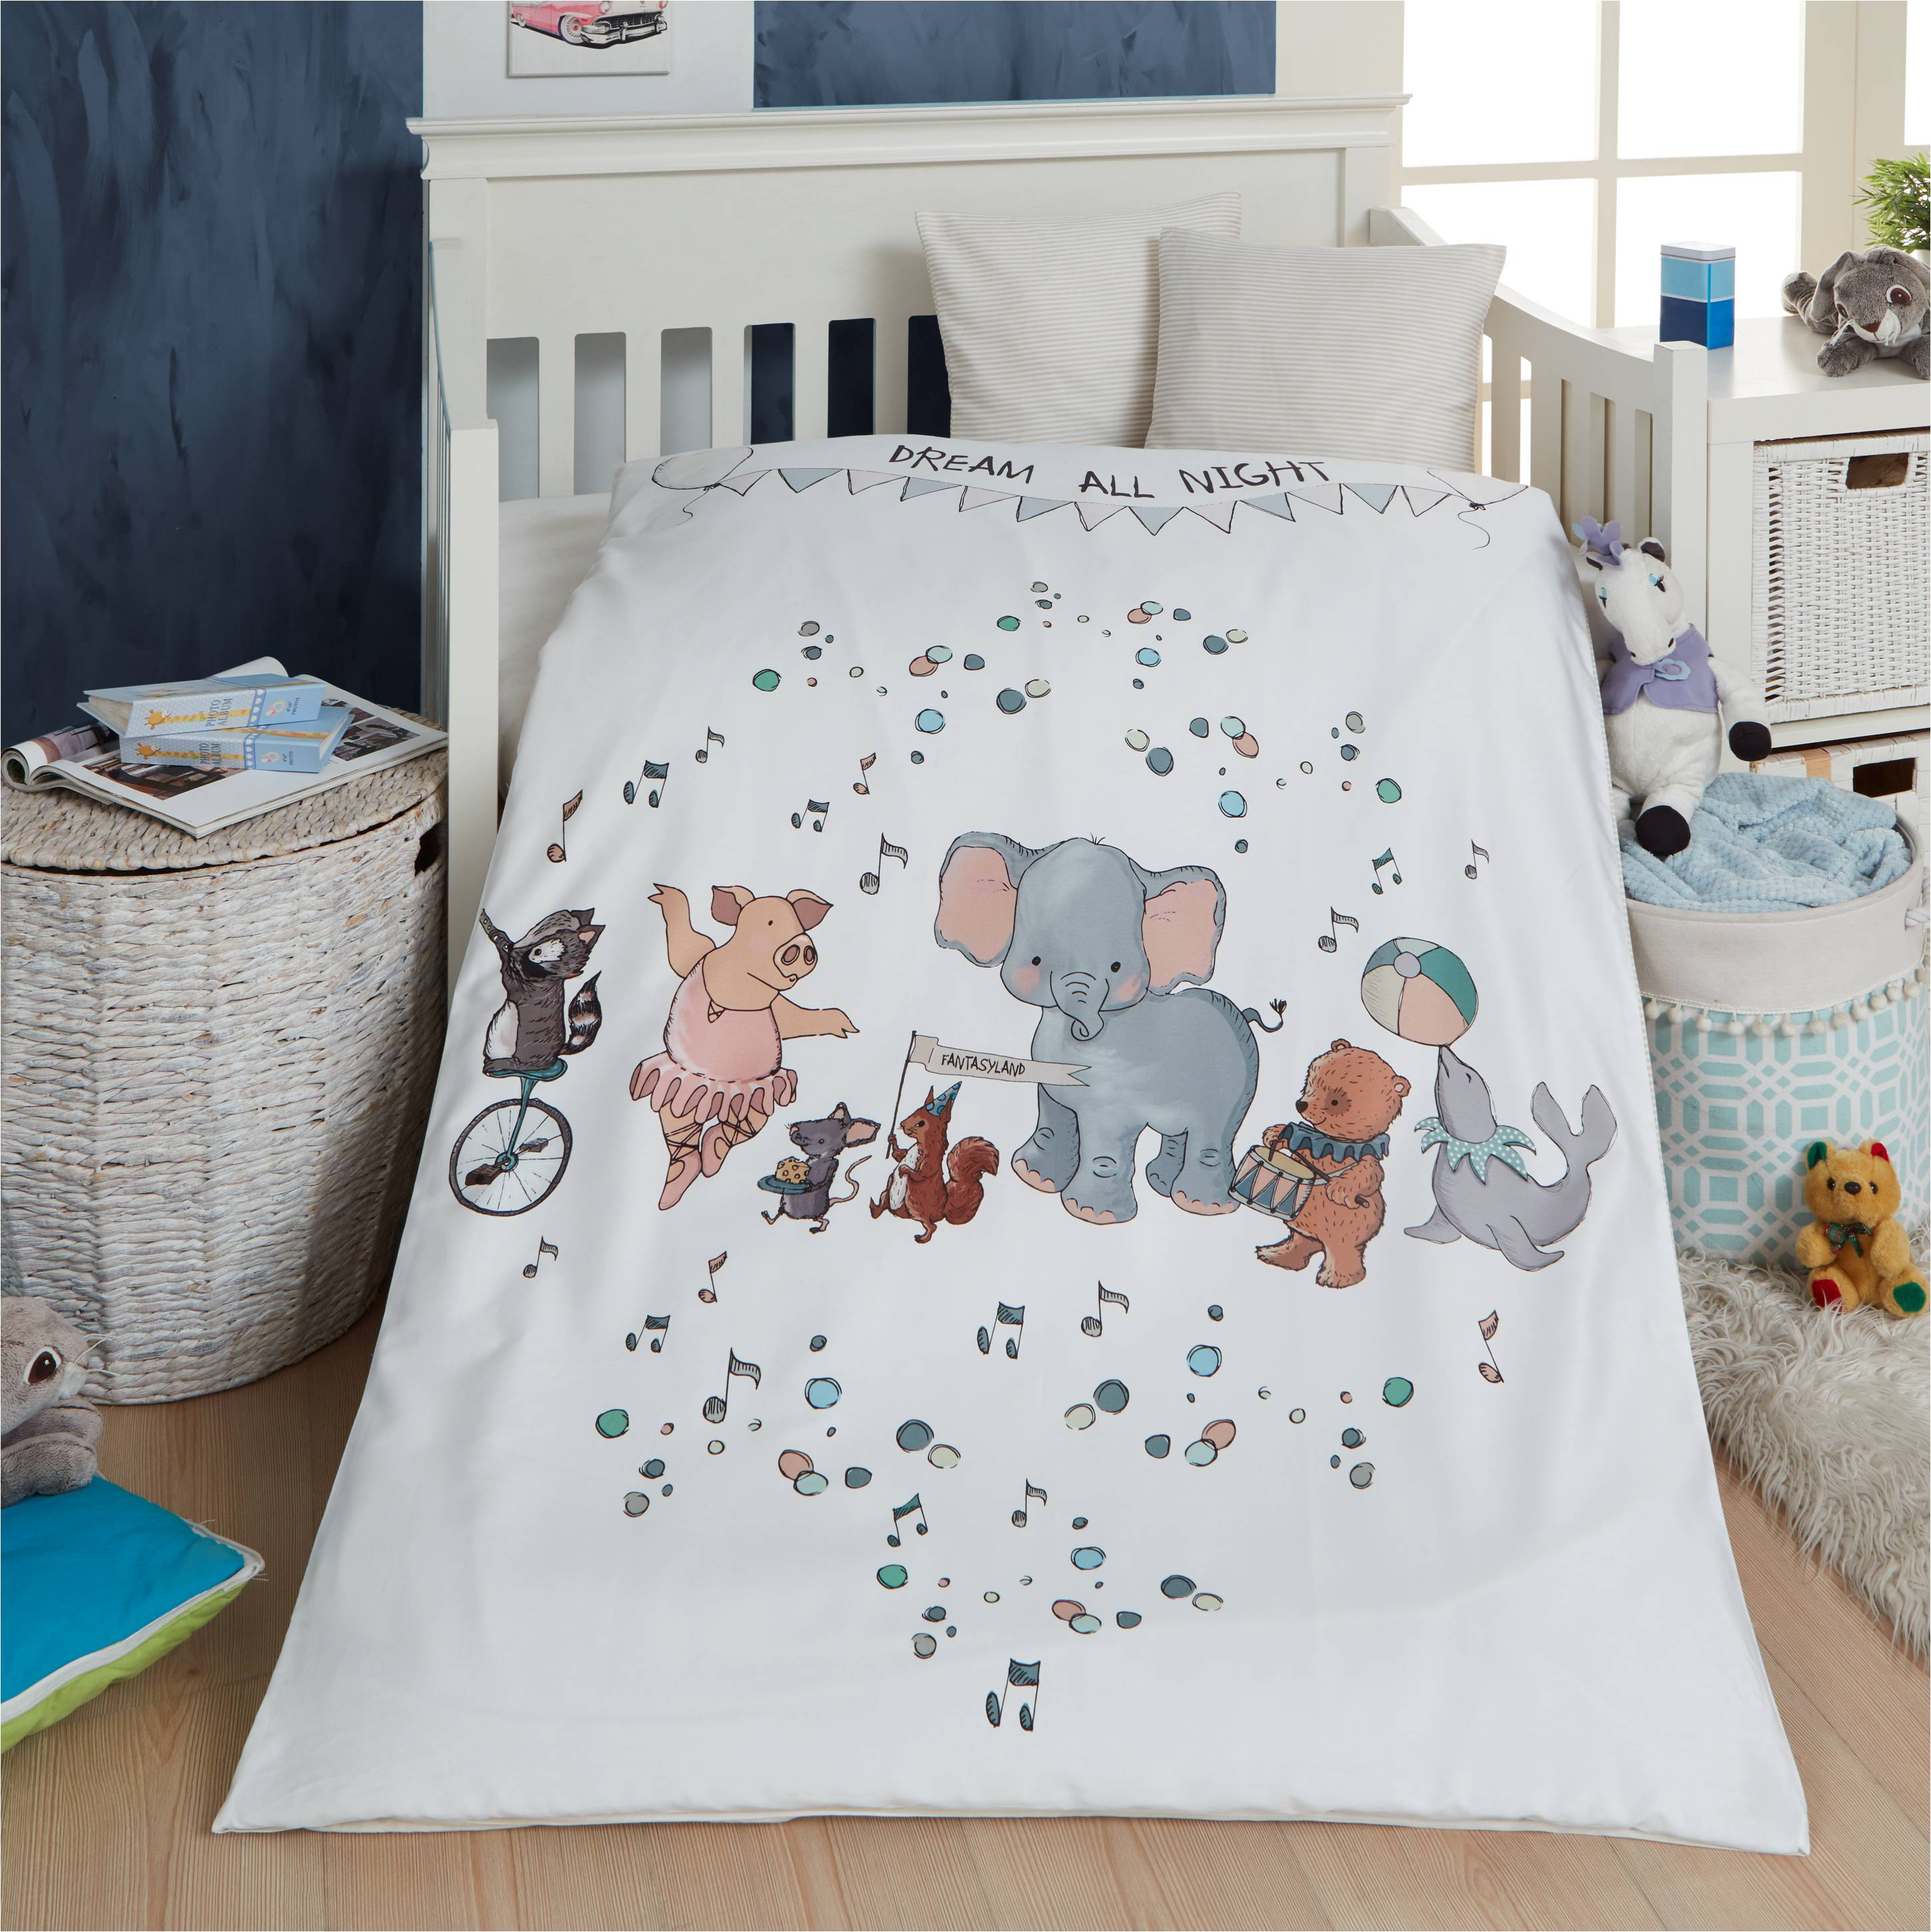 Picture of: Baby Sengetoj Dream All Night M P 70x100cm Beige Striber Babysengetoj Byskagen